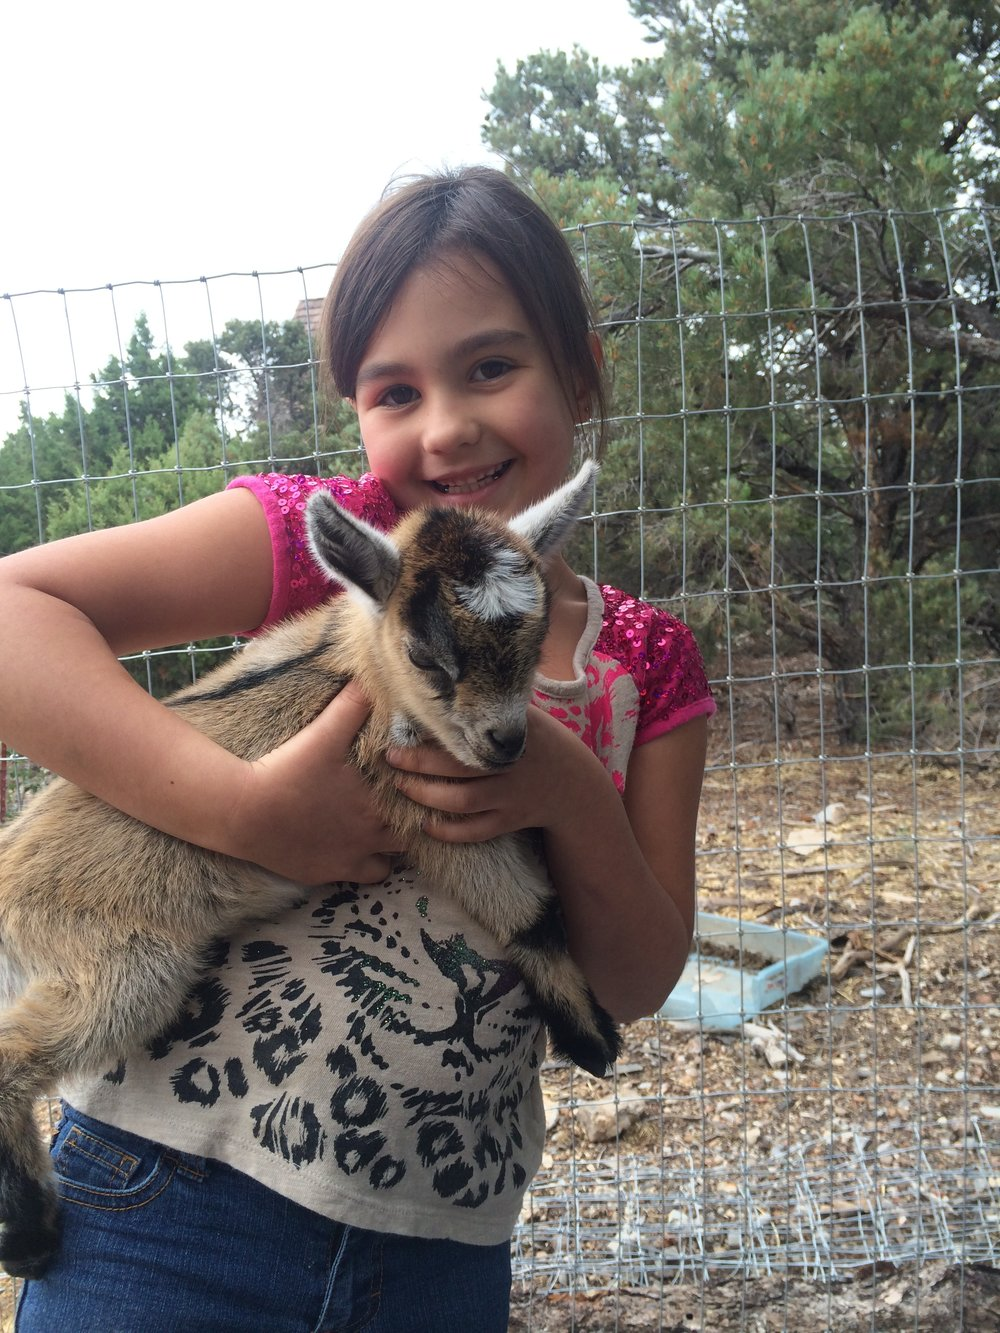 One of my grand babies with one of our goat babies...